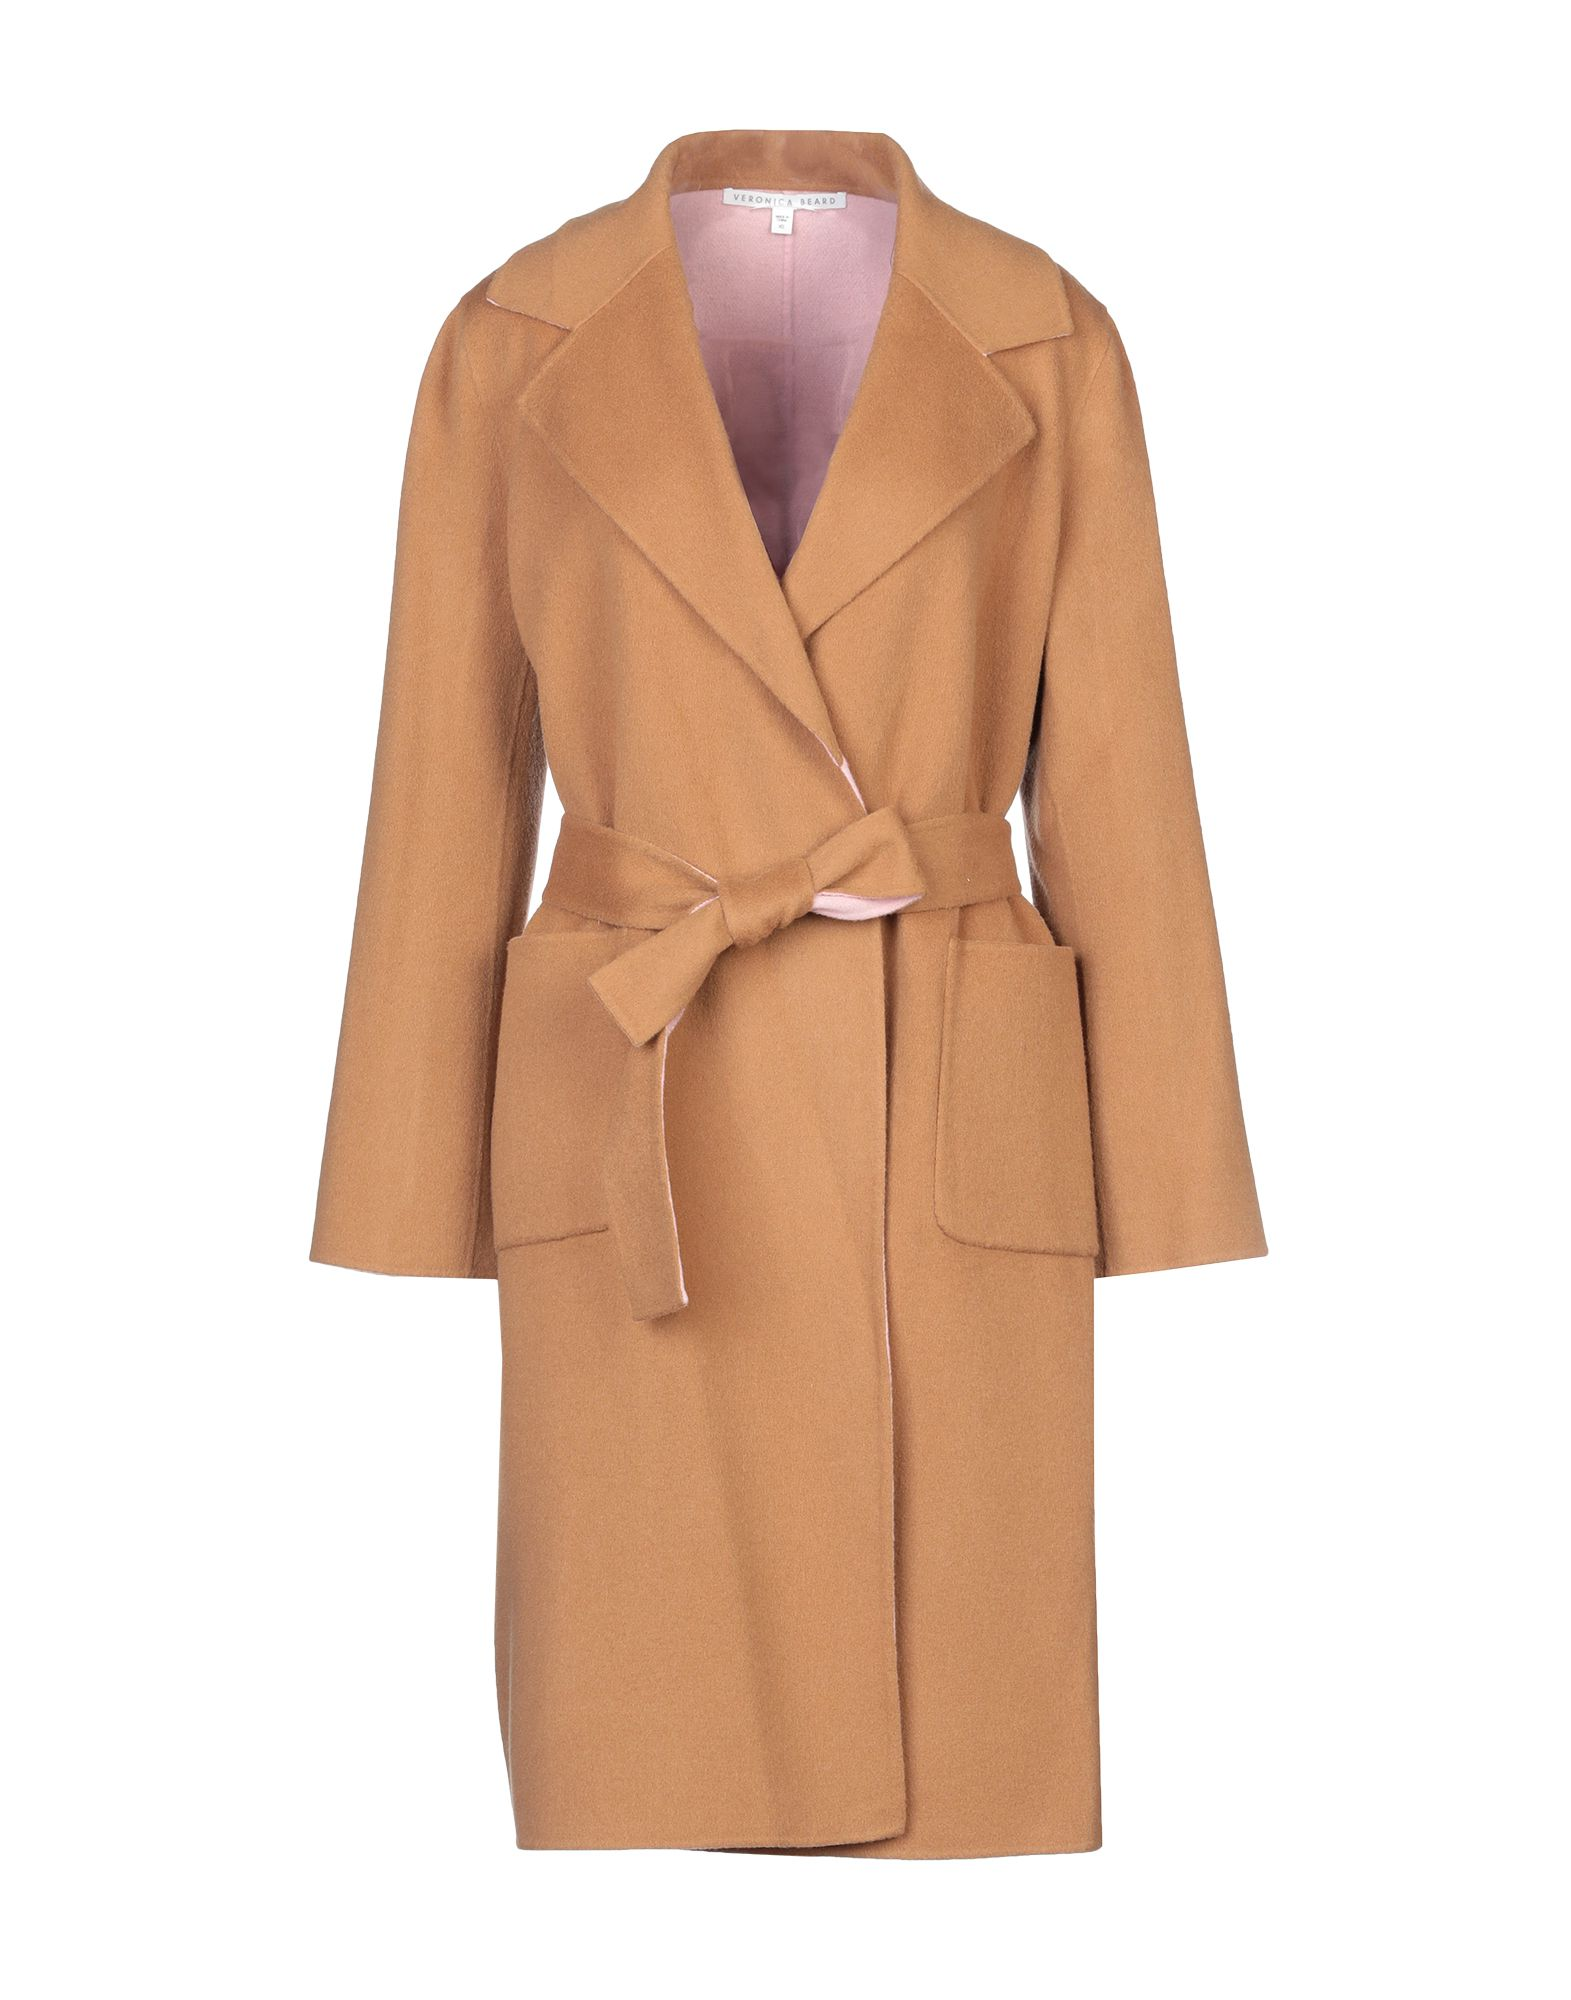 VERONICA BEARD Overcoats. flannel, belt, basic solid color, single-breasted, self-tie wrap closure, lapel collar, multipockets, long sleeves, unlined, double face. 90% Wool, 10% Cashmere